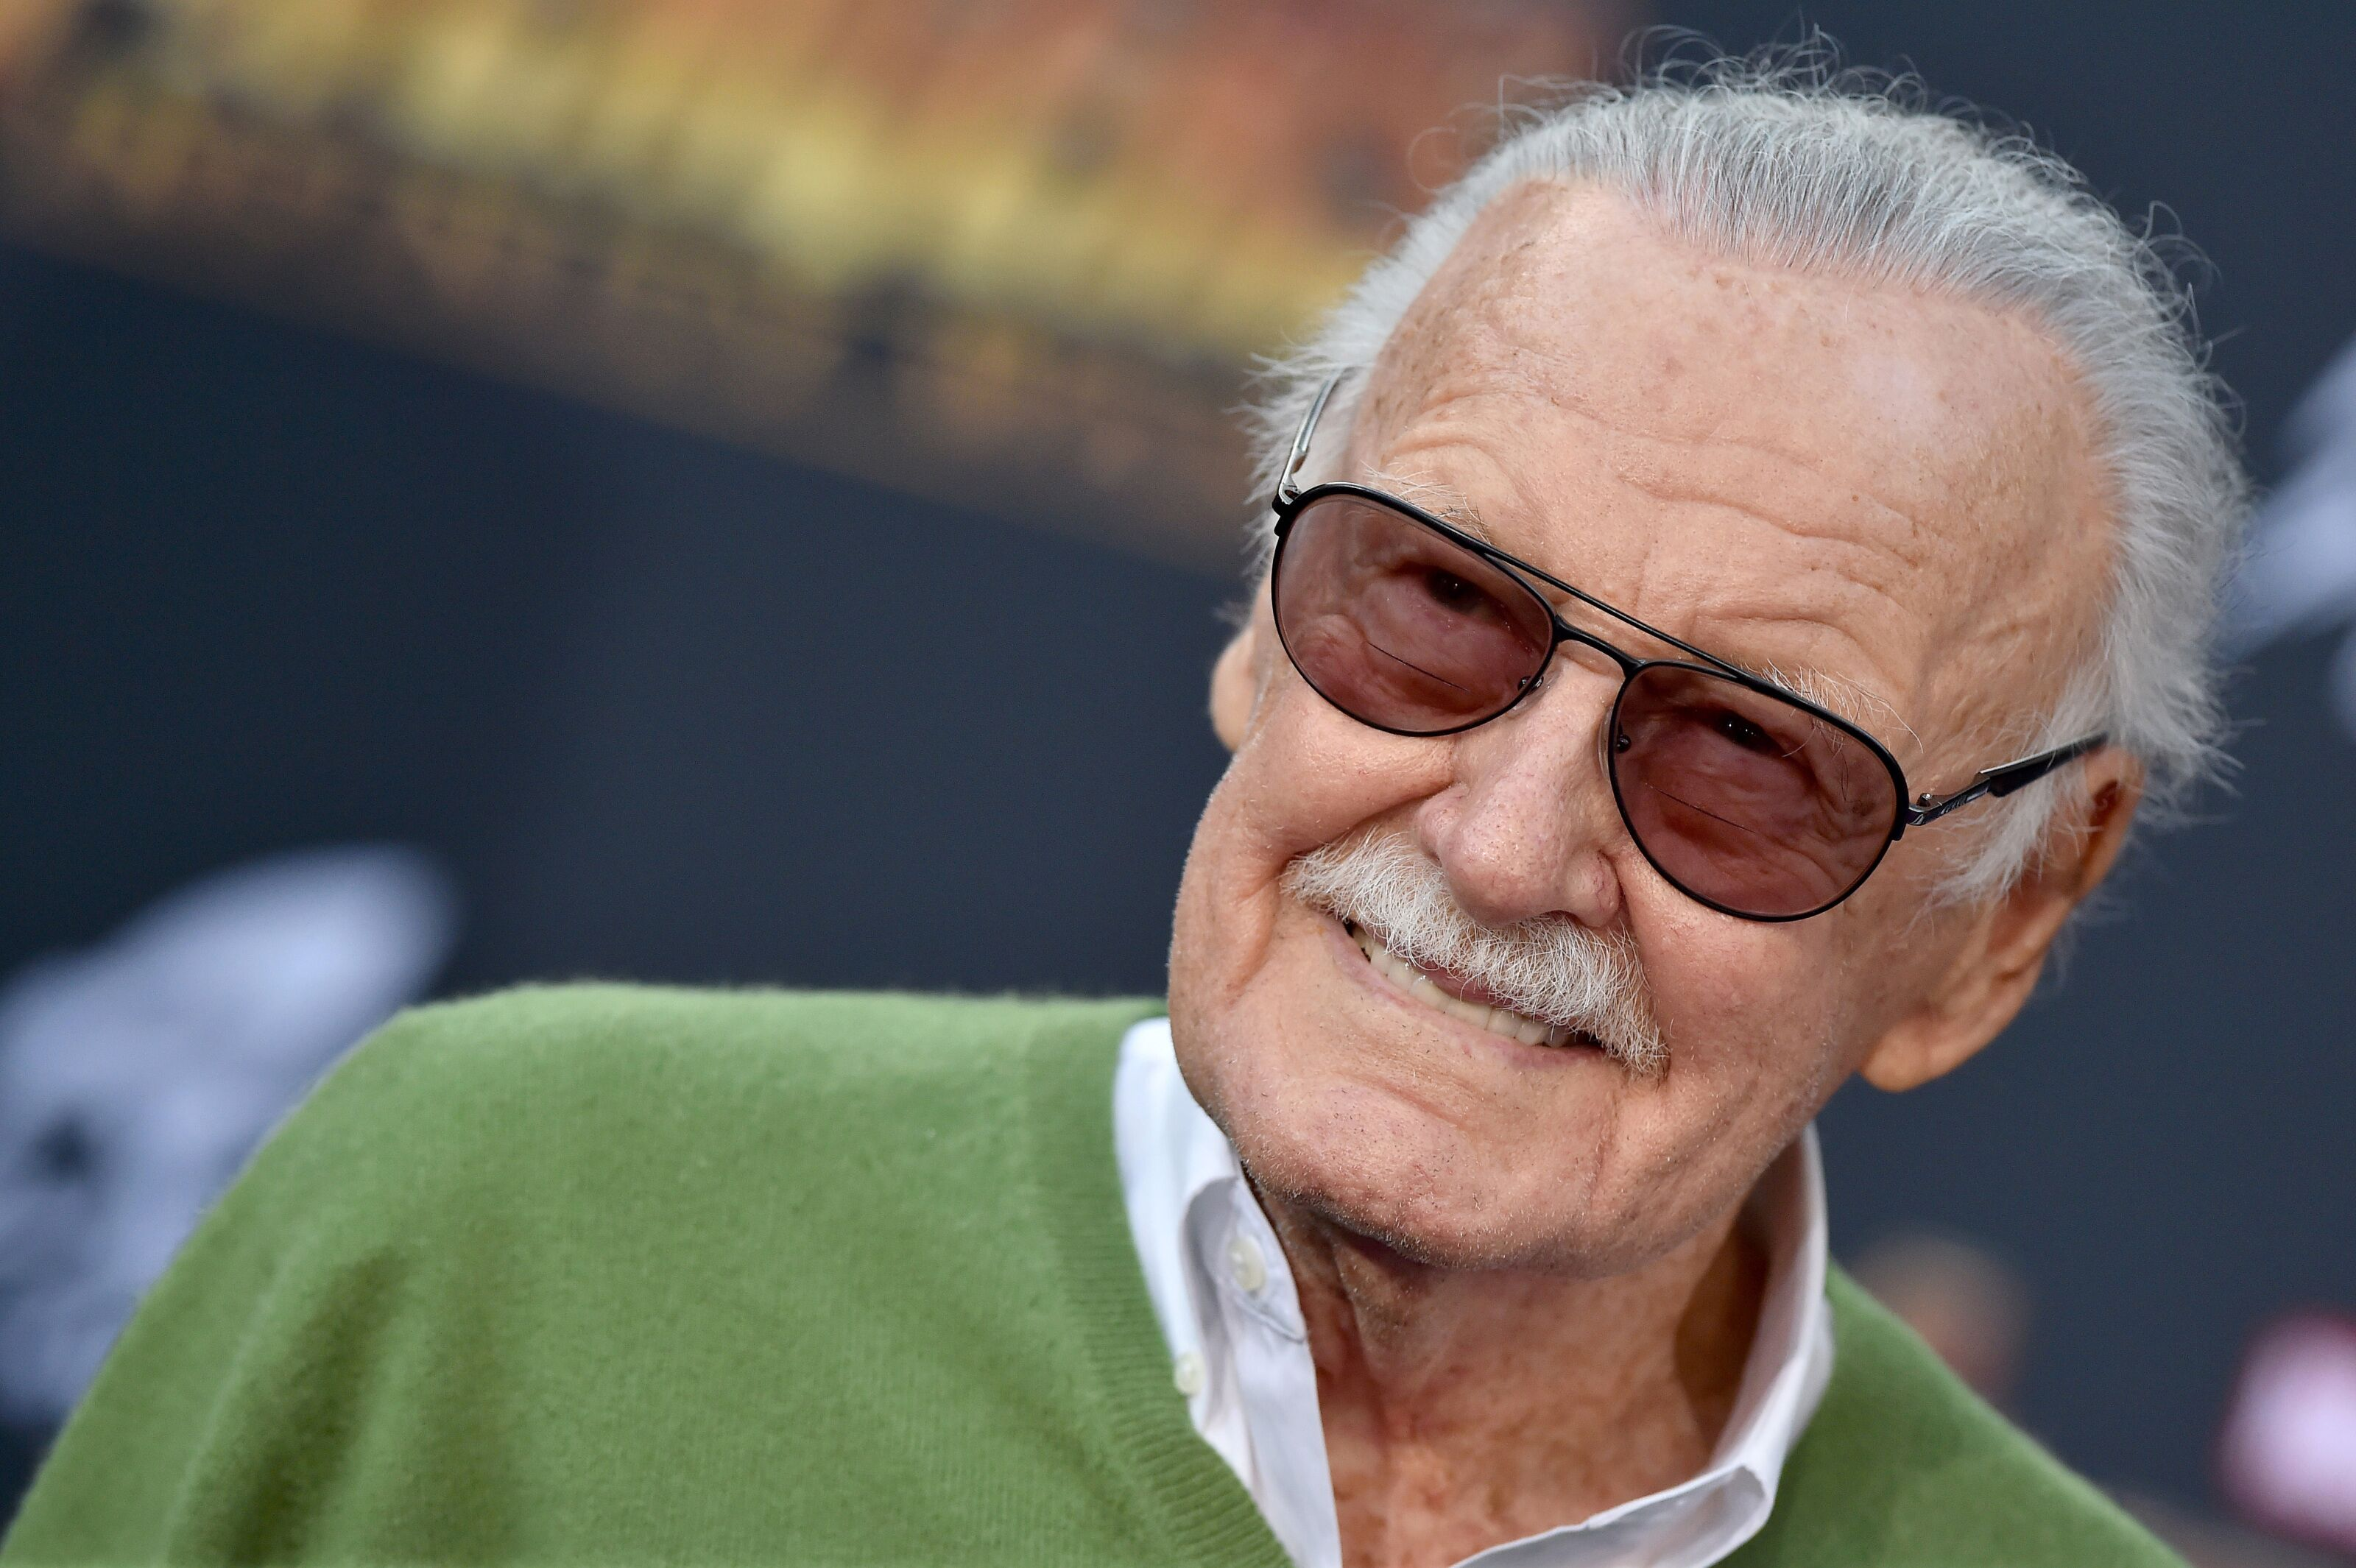 Stan Lee Twitter tributes go well beyond the worlds of comics, superheroes